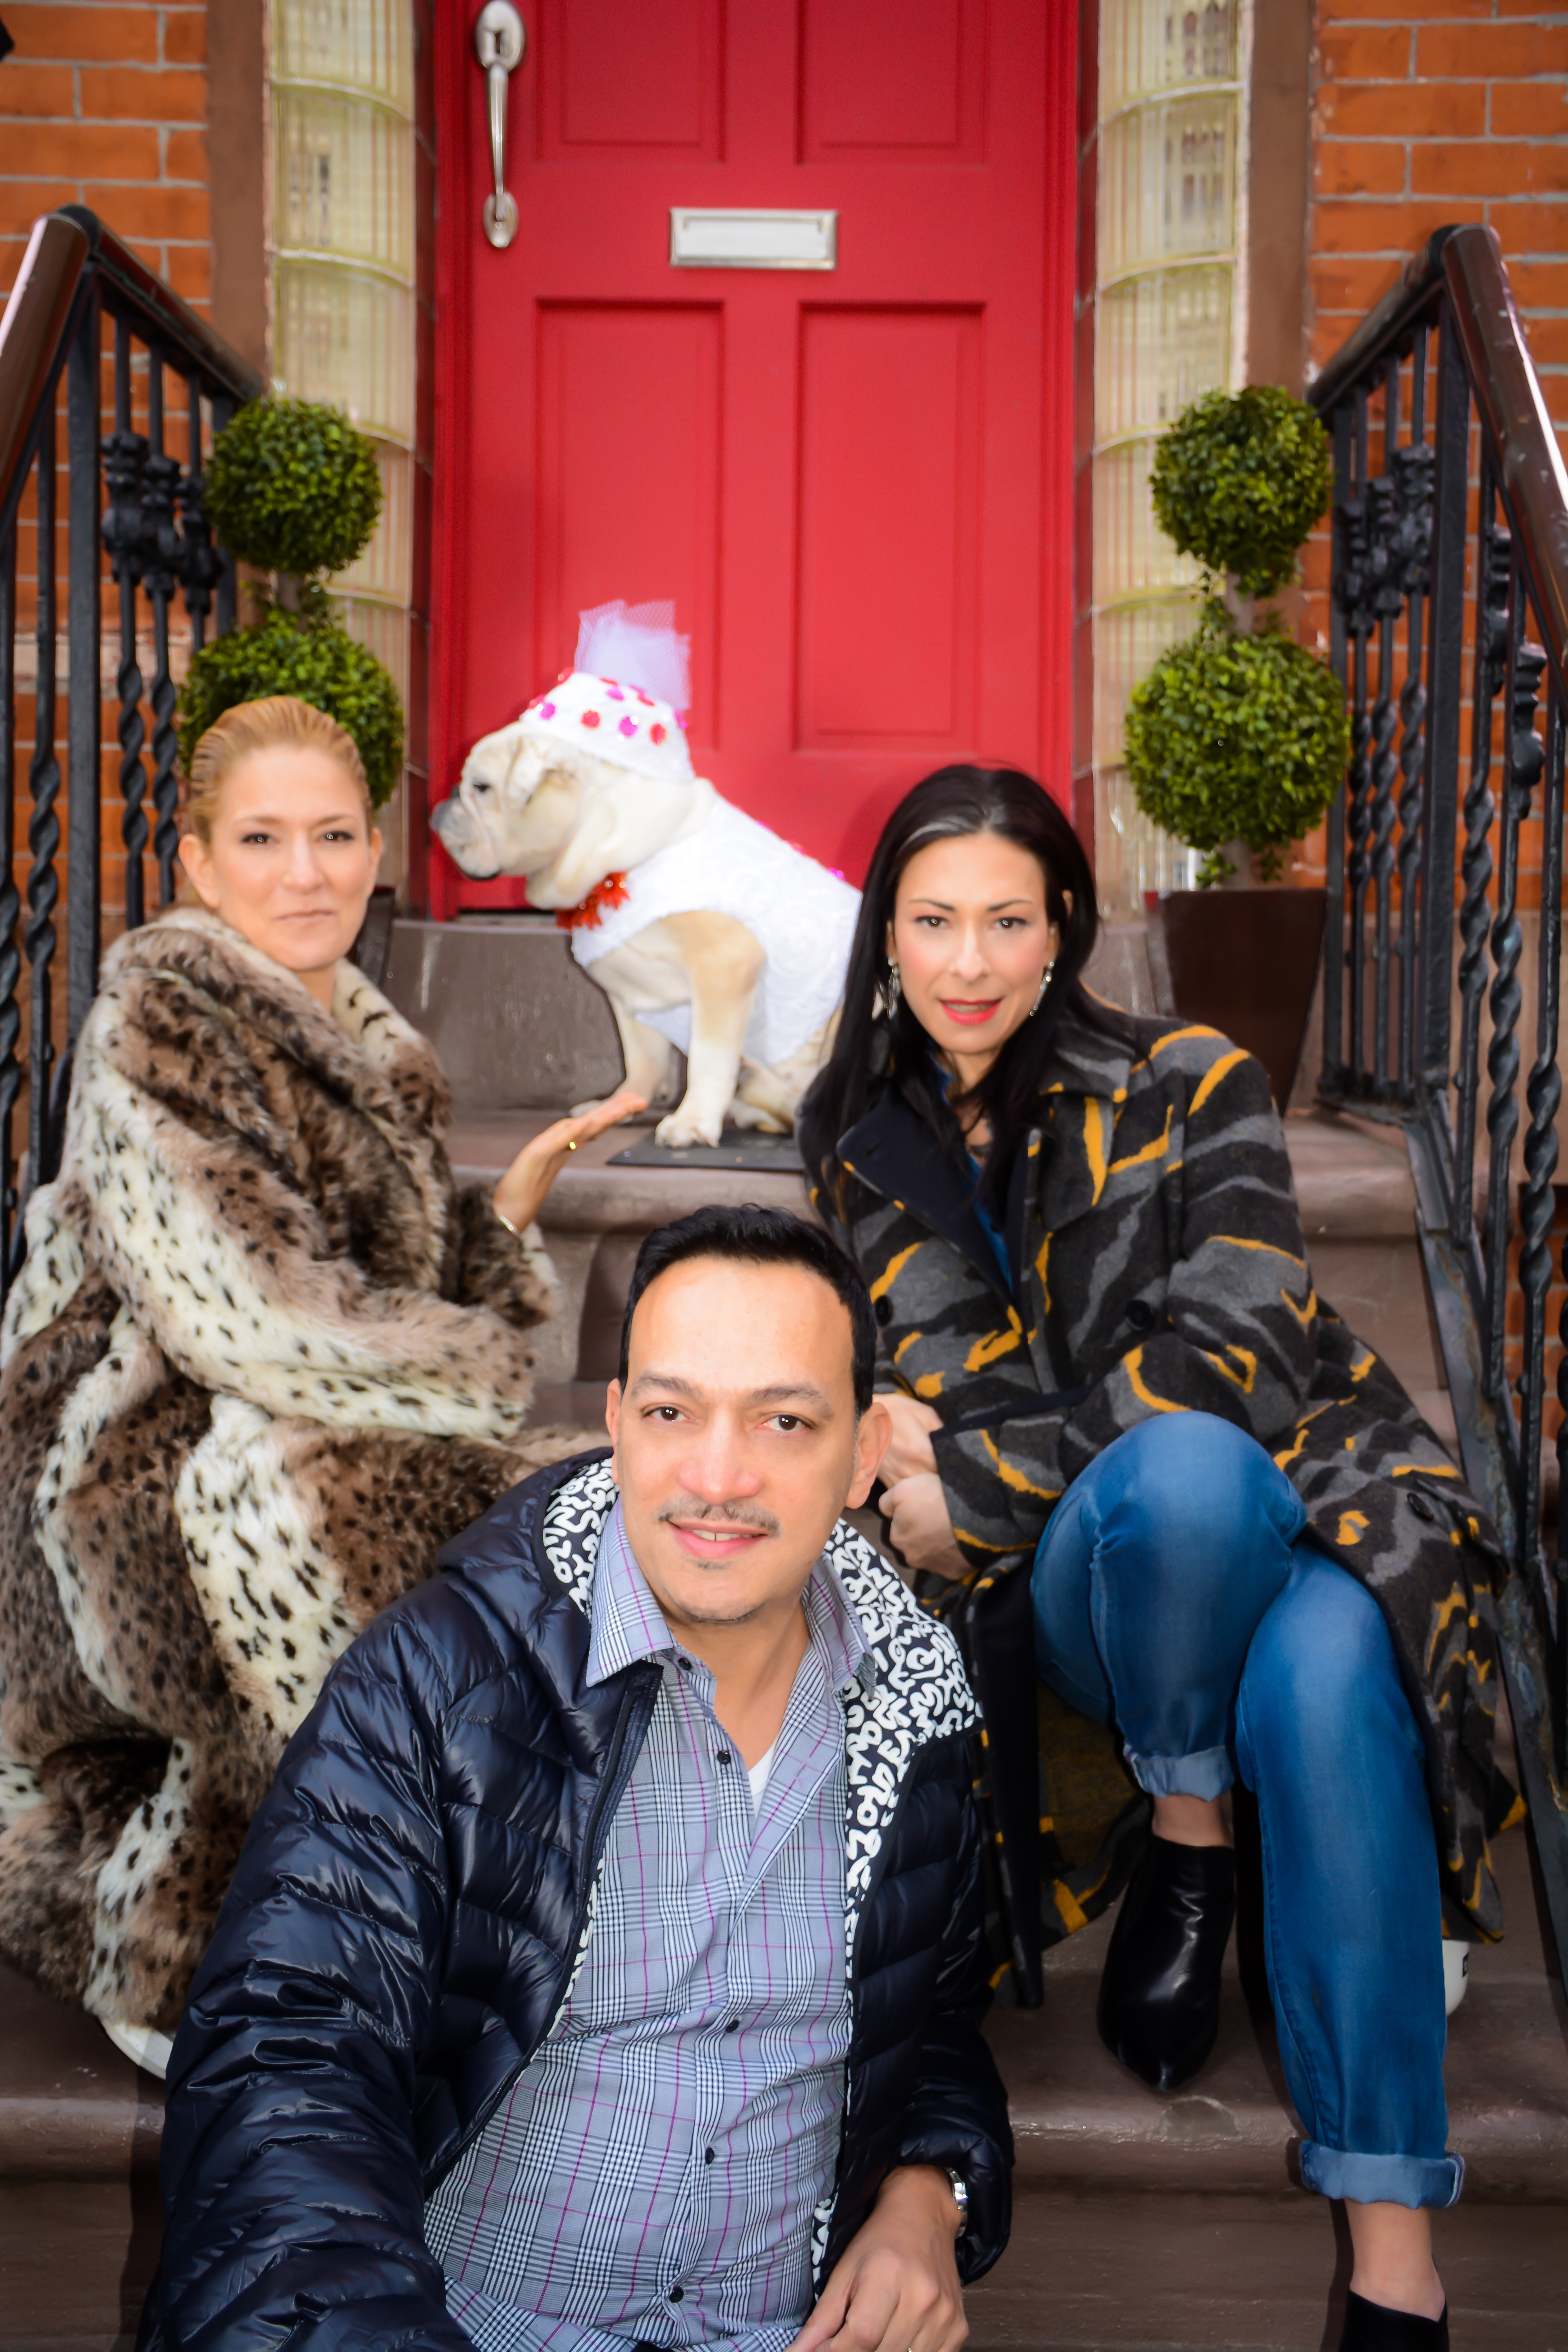 Host Cat Greenleaf, guest Stacy London, Designer Anthony Rubio with Bulldog Gracie wearing Anthony Rubio Designs on the set of Talk Stoop on NBC